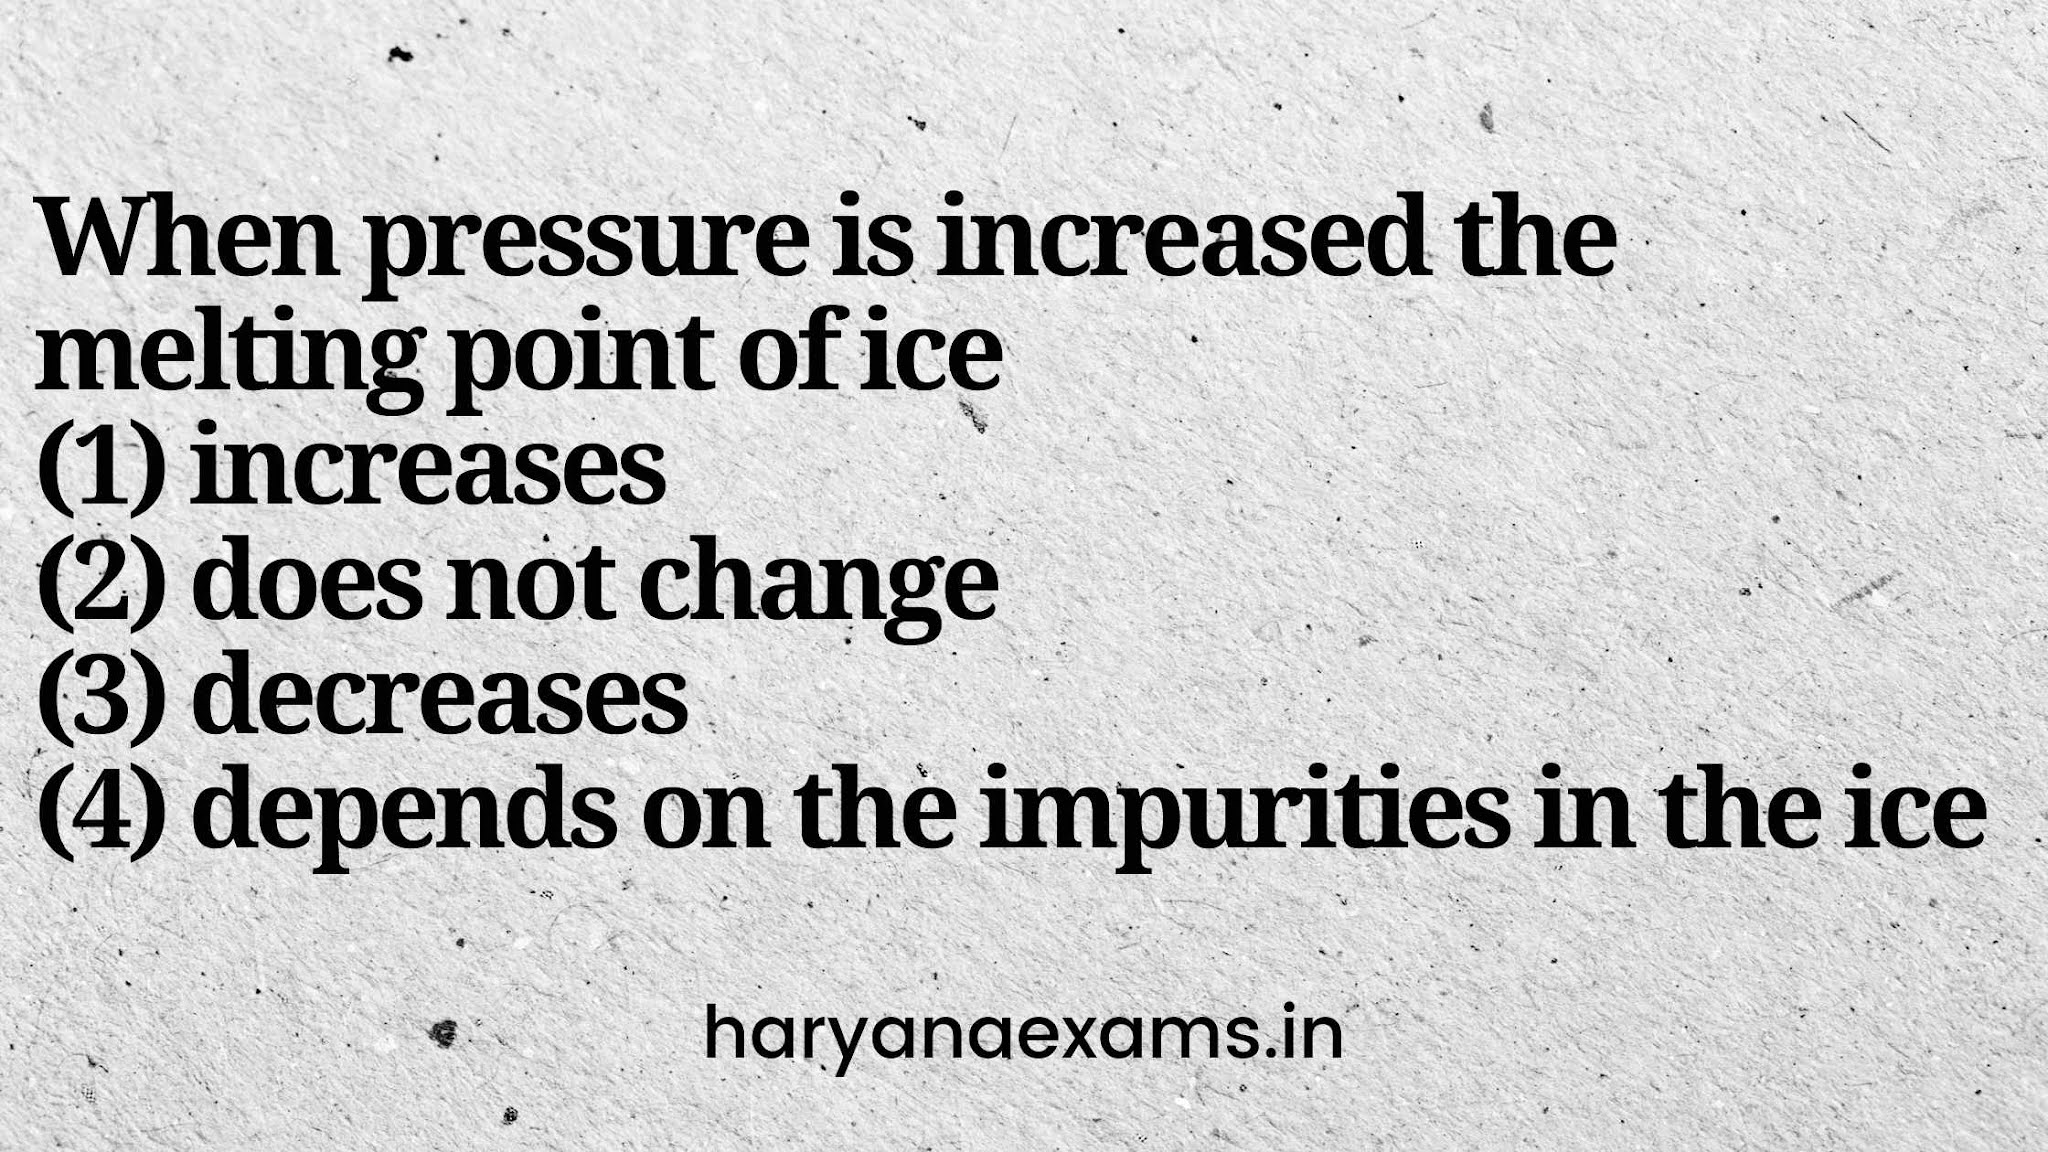 When pressure is increased the melting point of ice   (1) increases   (2) does not change   (3) decreases   (4) depends on the impurities in the ice